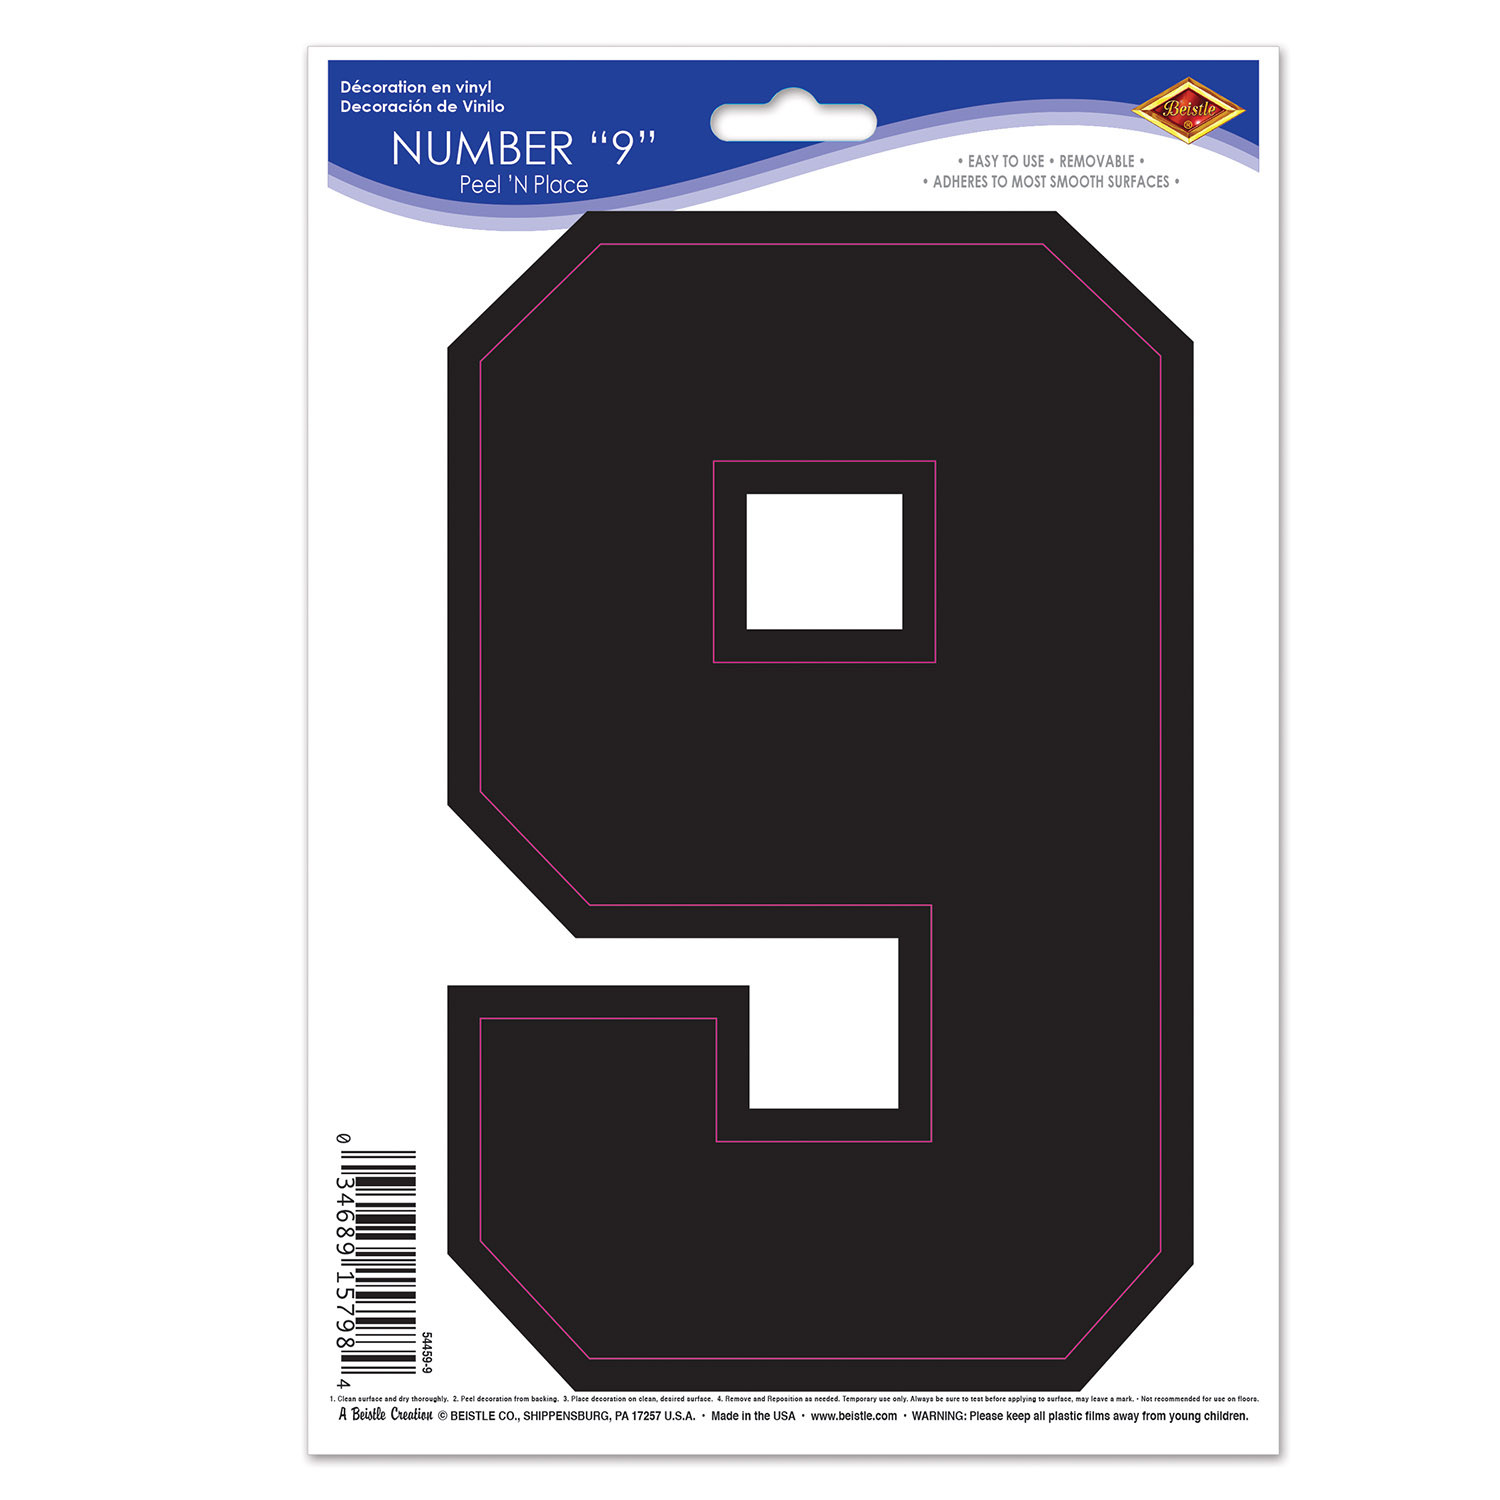 Black  9  Peel N Place (Pack of 12) Peel N Place, 9, Number Clings, Wall Clings, Cheap wall decorations, Inexpensive sports decor, Wholesale party decorations